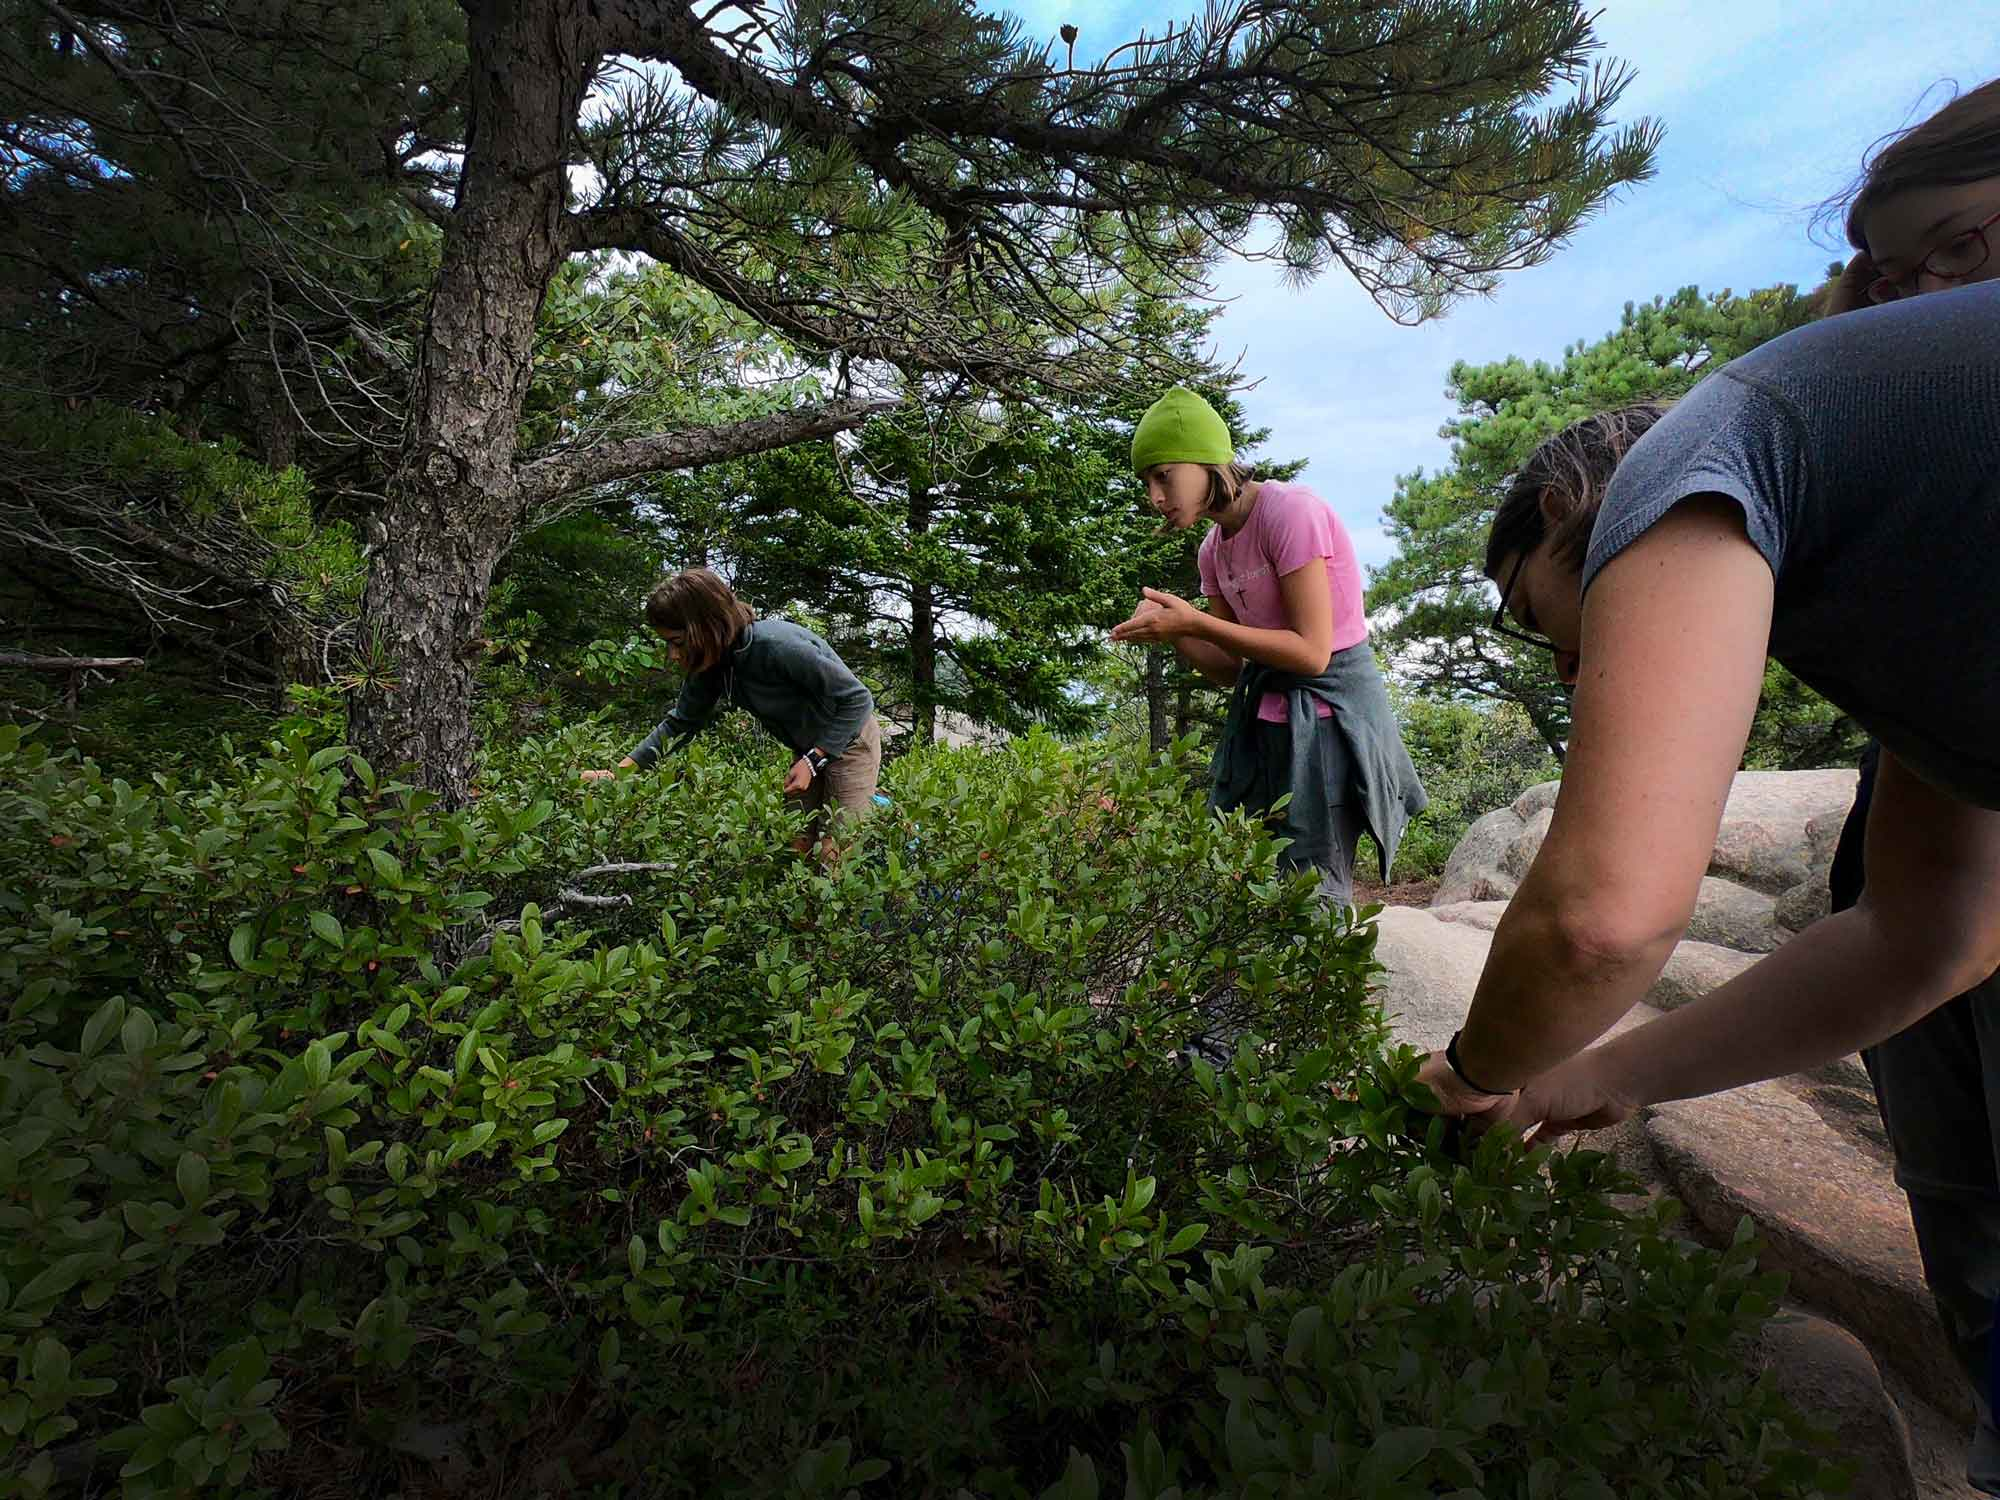 Family picking huckleberries on the Beehive Trail, Acadia National Park, Maine